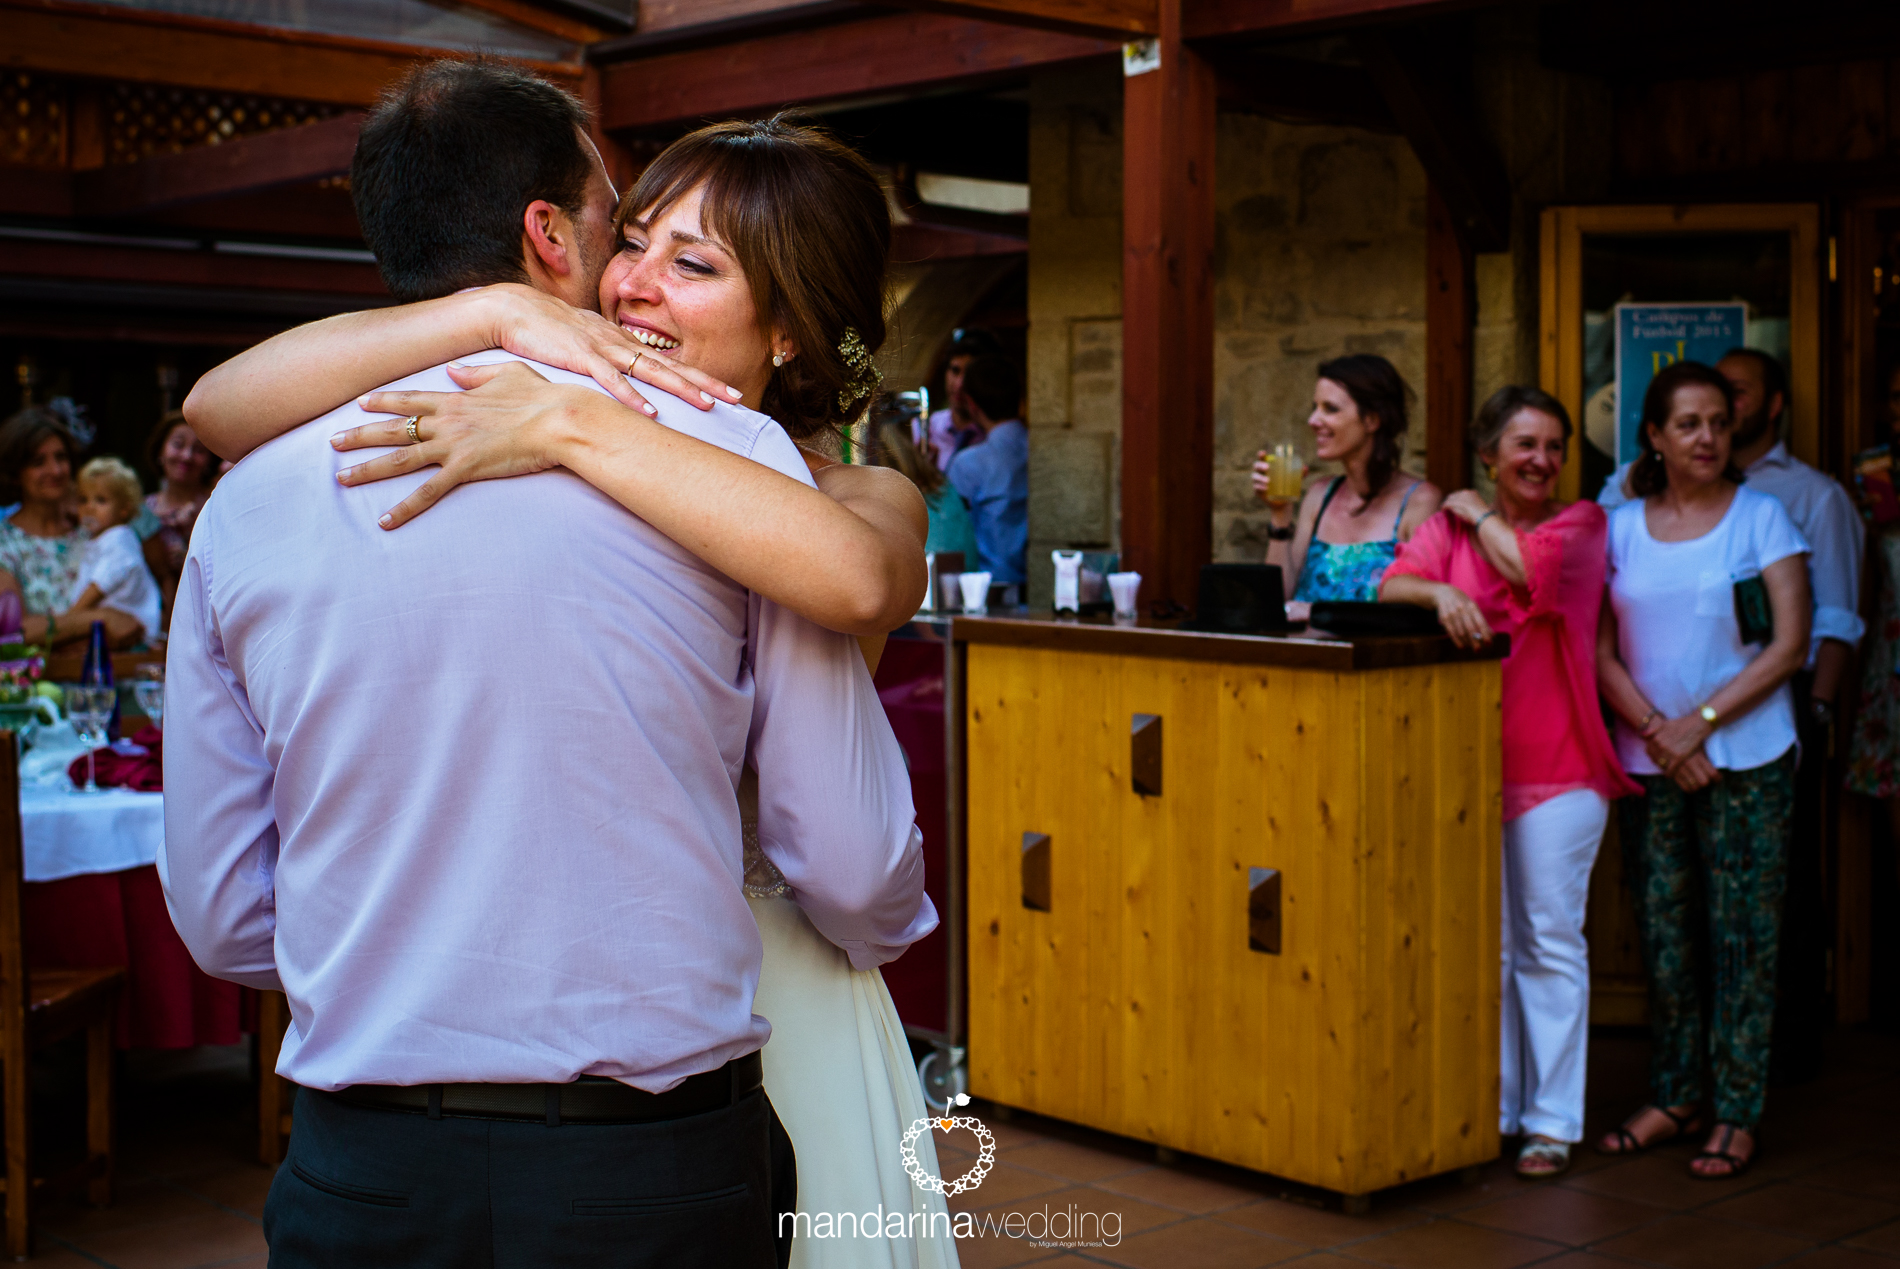 mandarina wedding_38